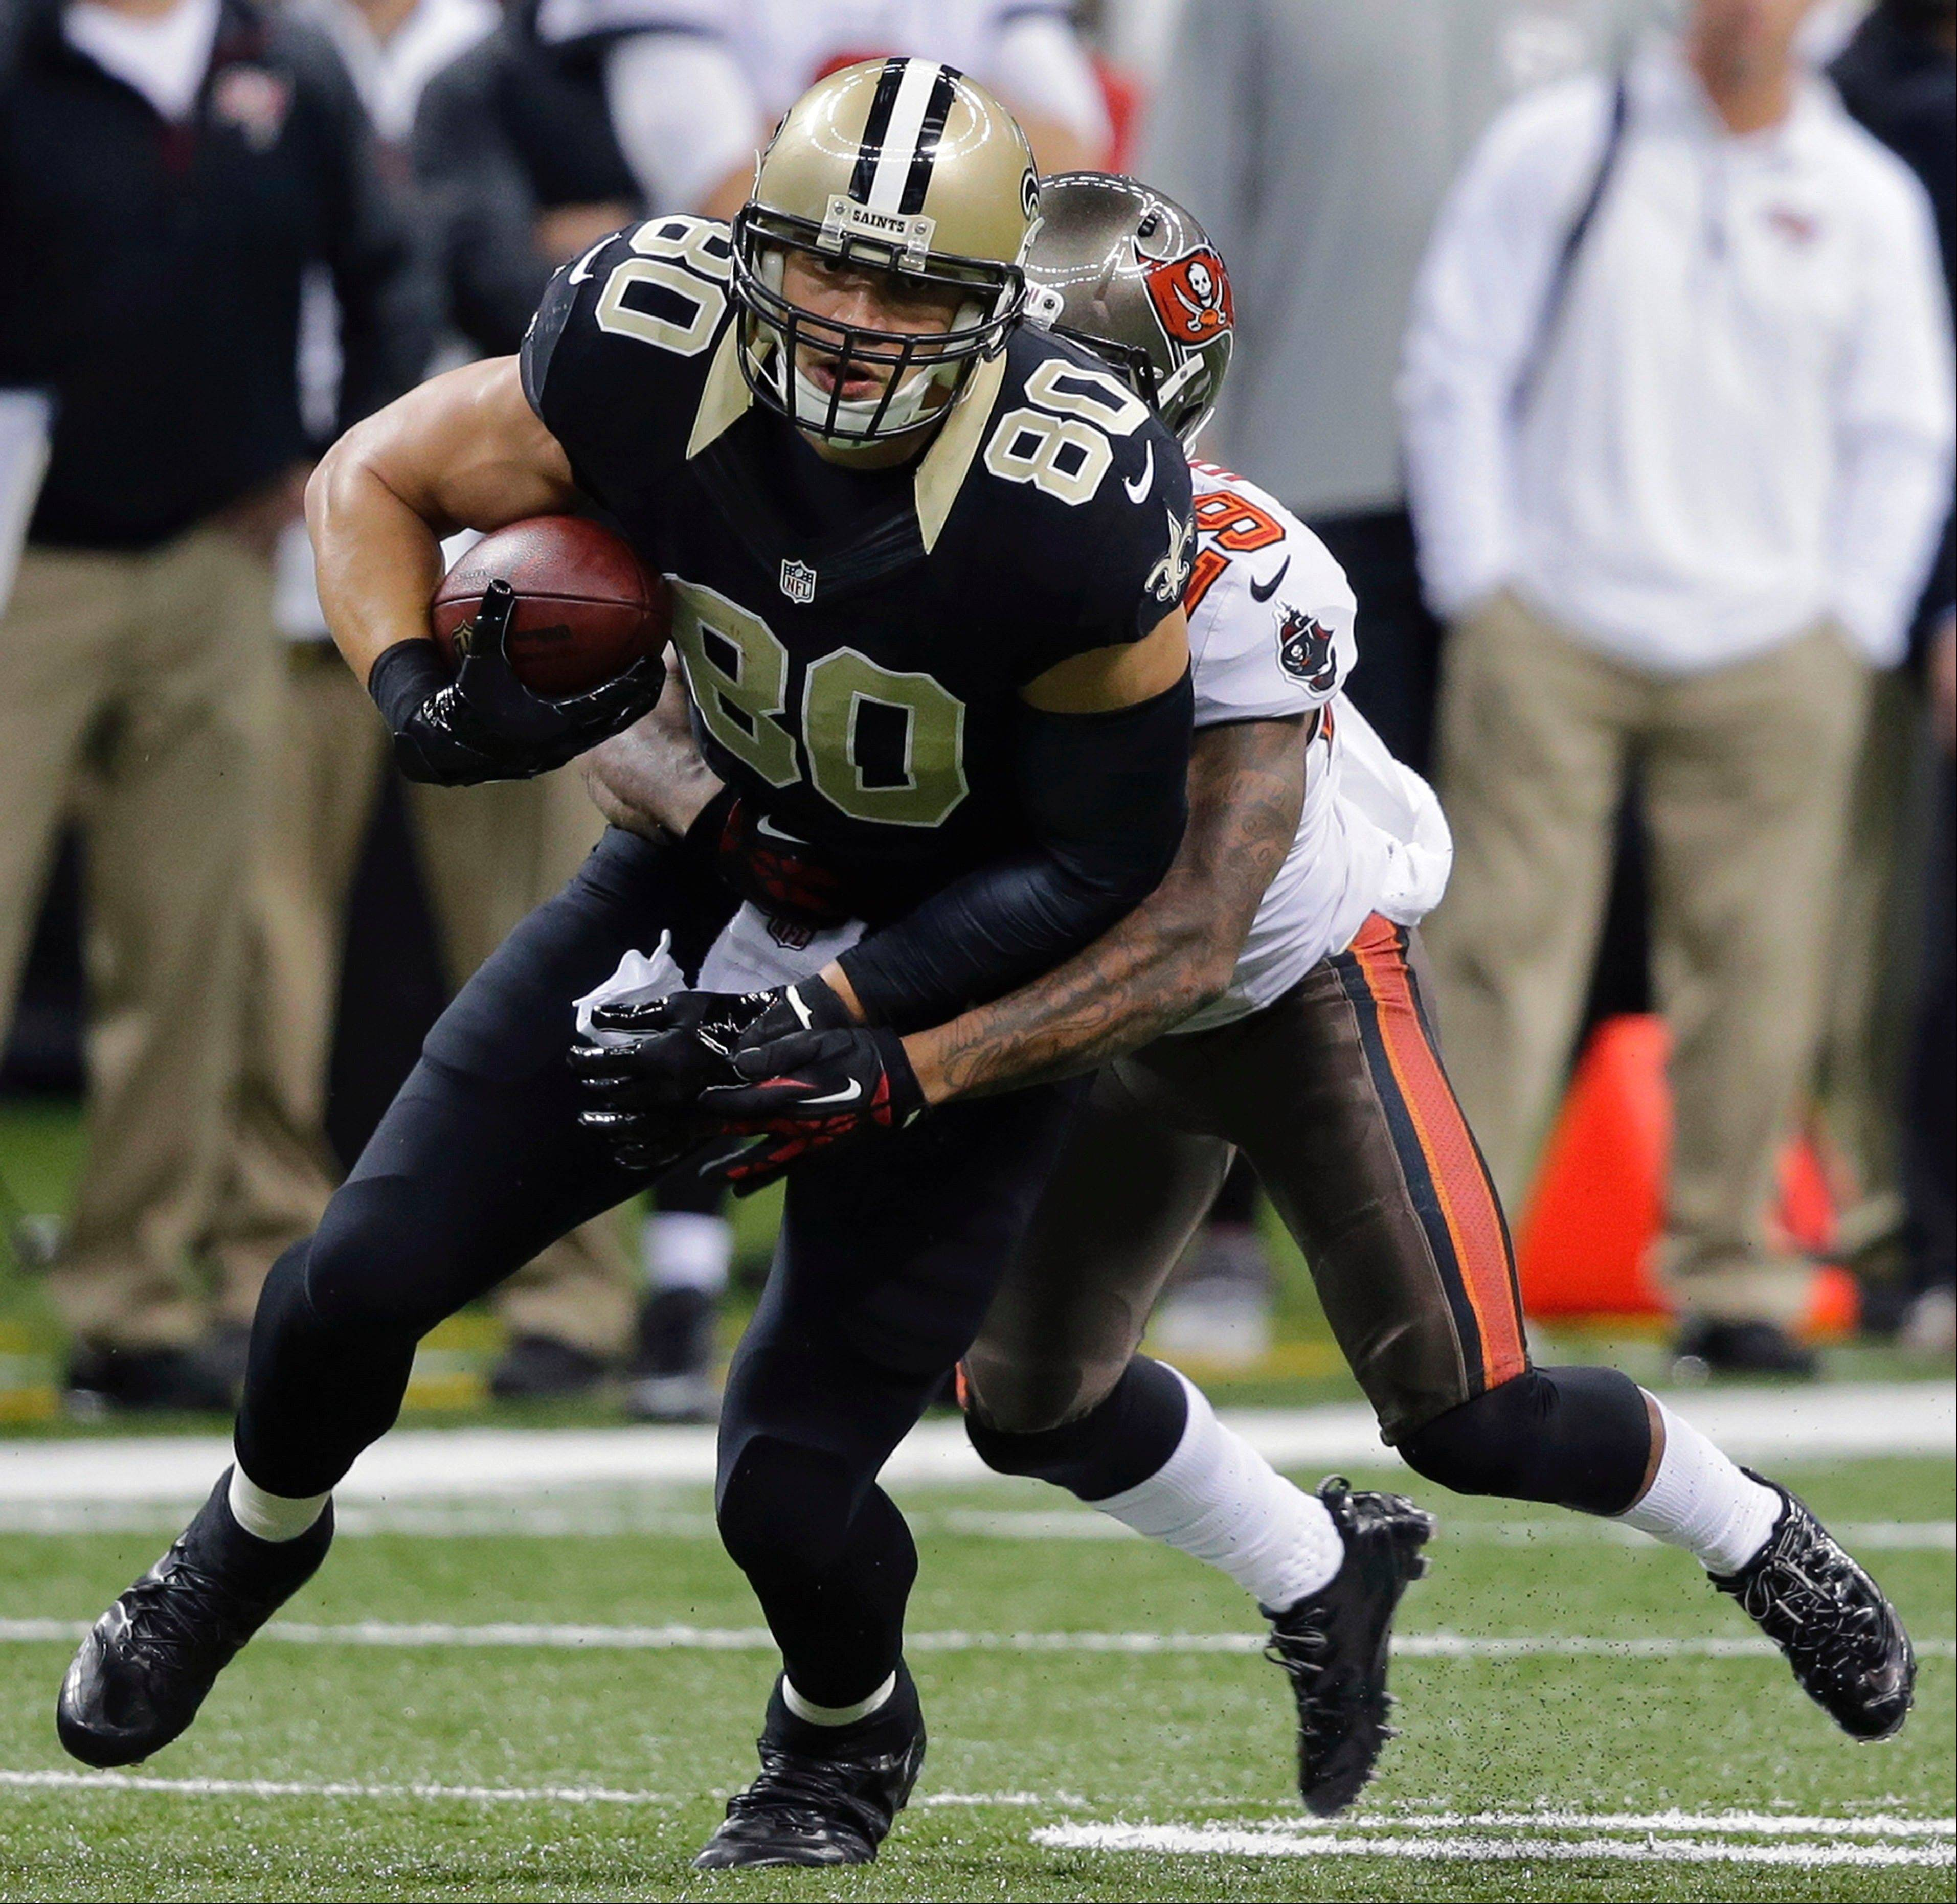 Saints tight end Jimmy Graham is tackled by Tampa Bay Buccaneers cornerback Leonard Johnson in the first half of Sunday�s game in New Orleans.